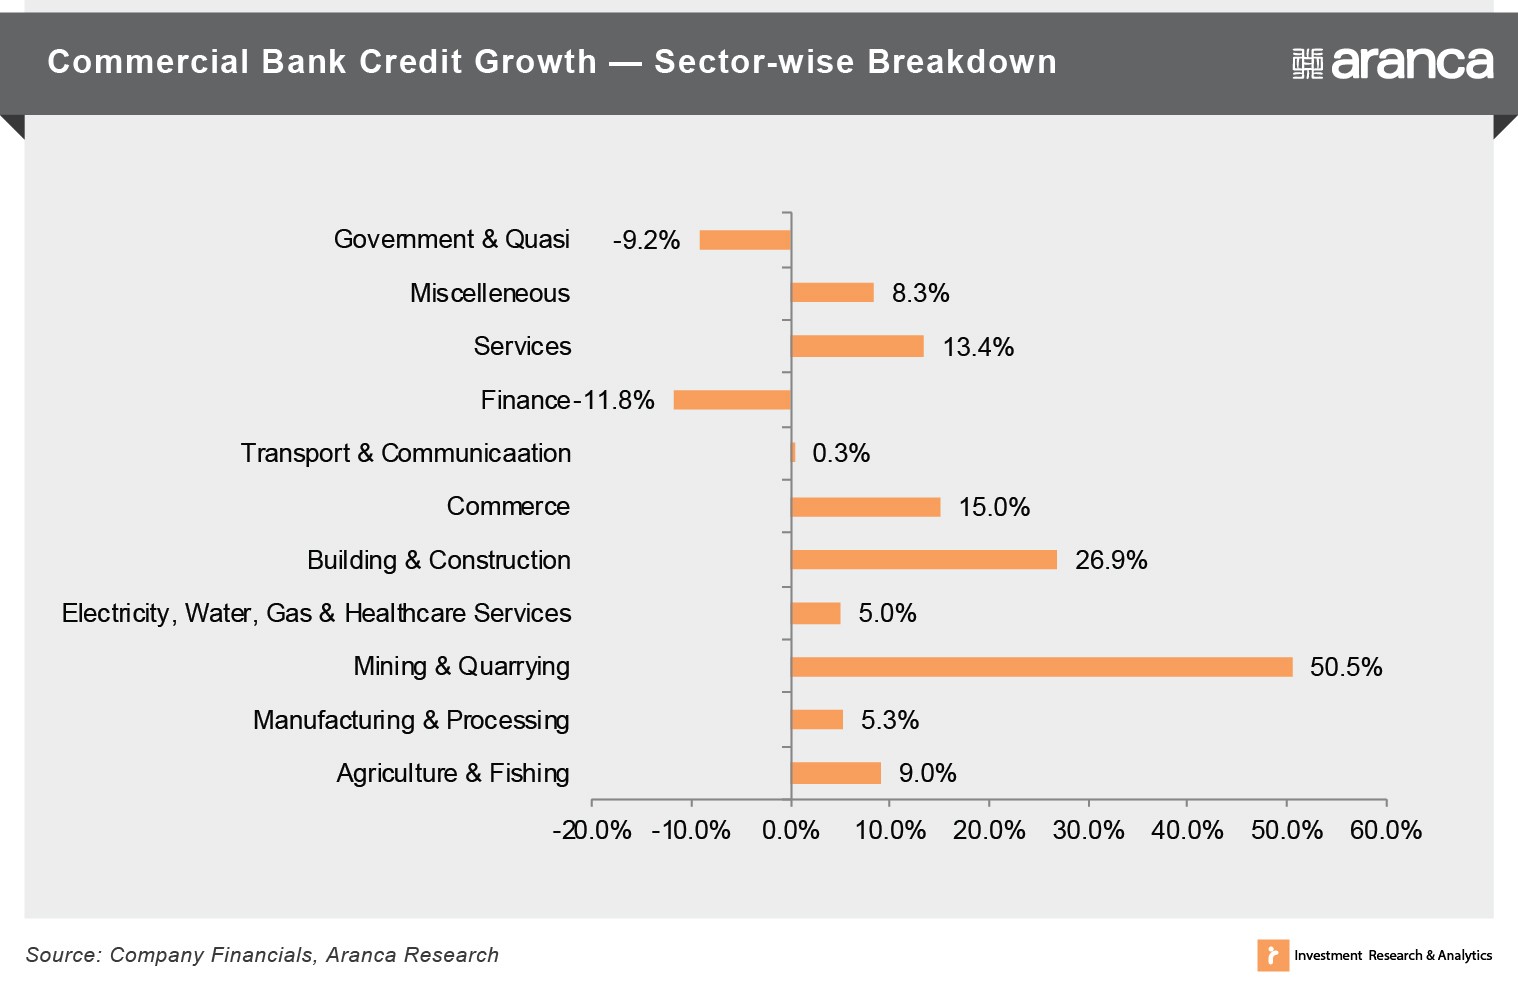 Commercial Bank Credit Growth — Sector-wise Breakdown